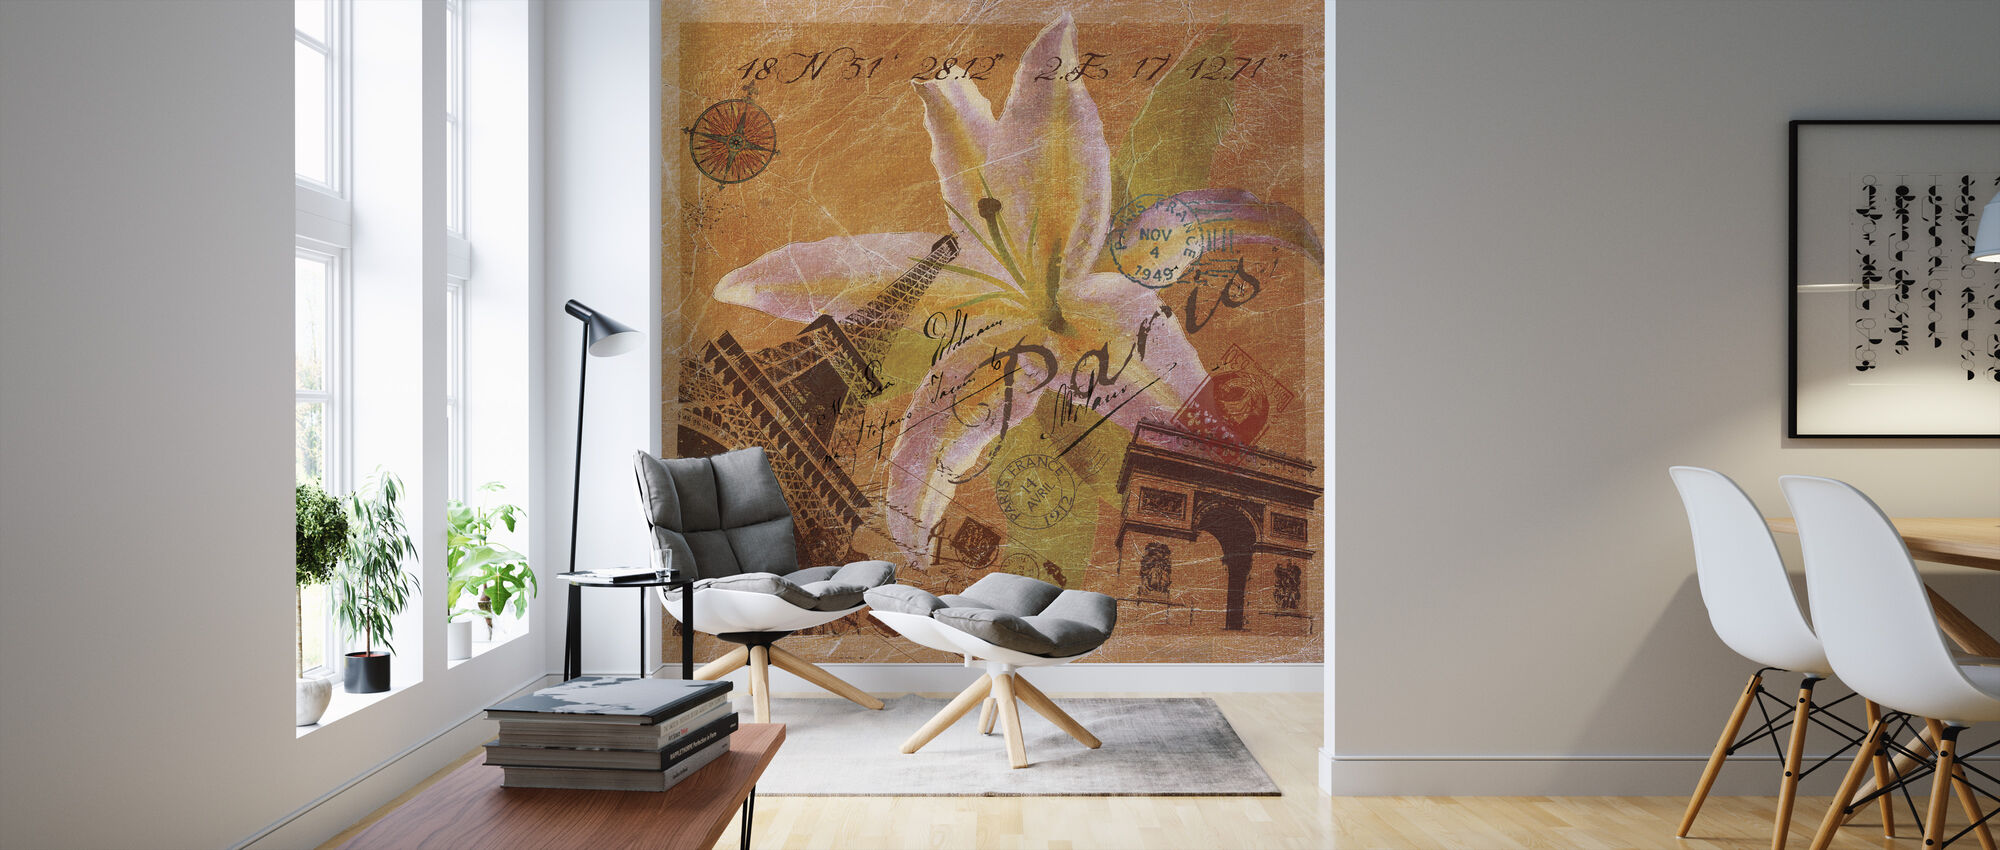 Paris Collage - Wallpaper - Living Room